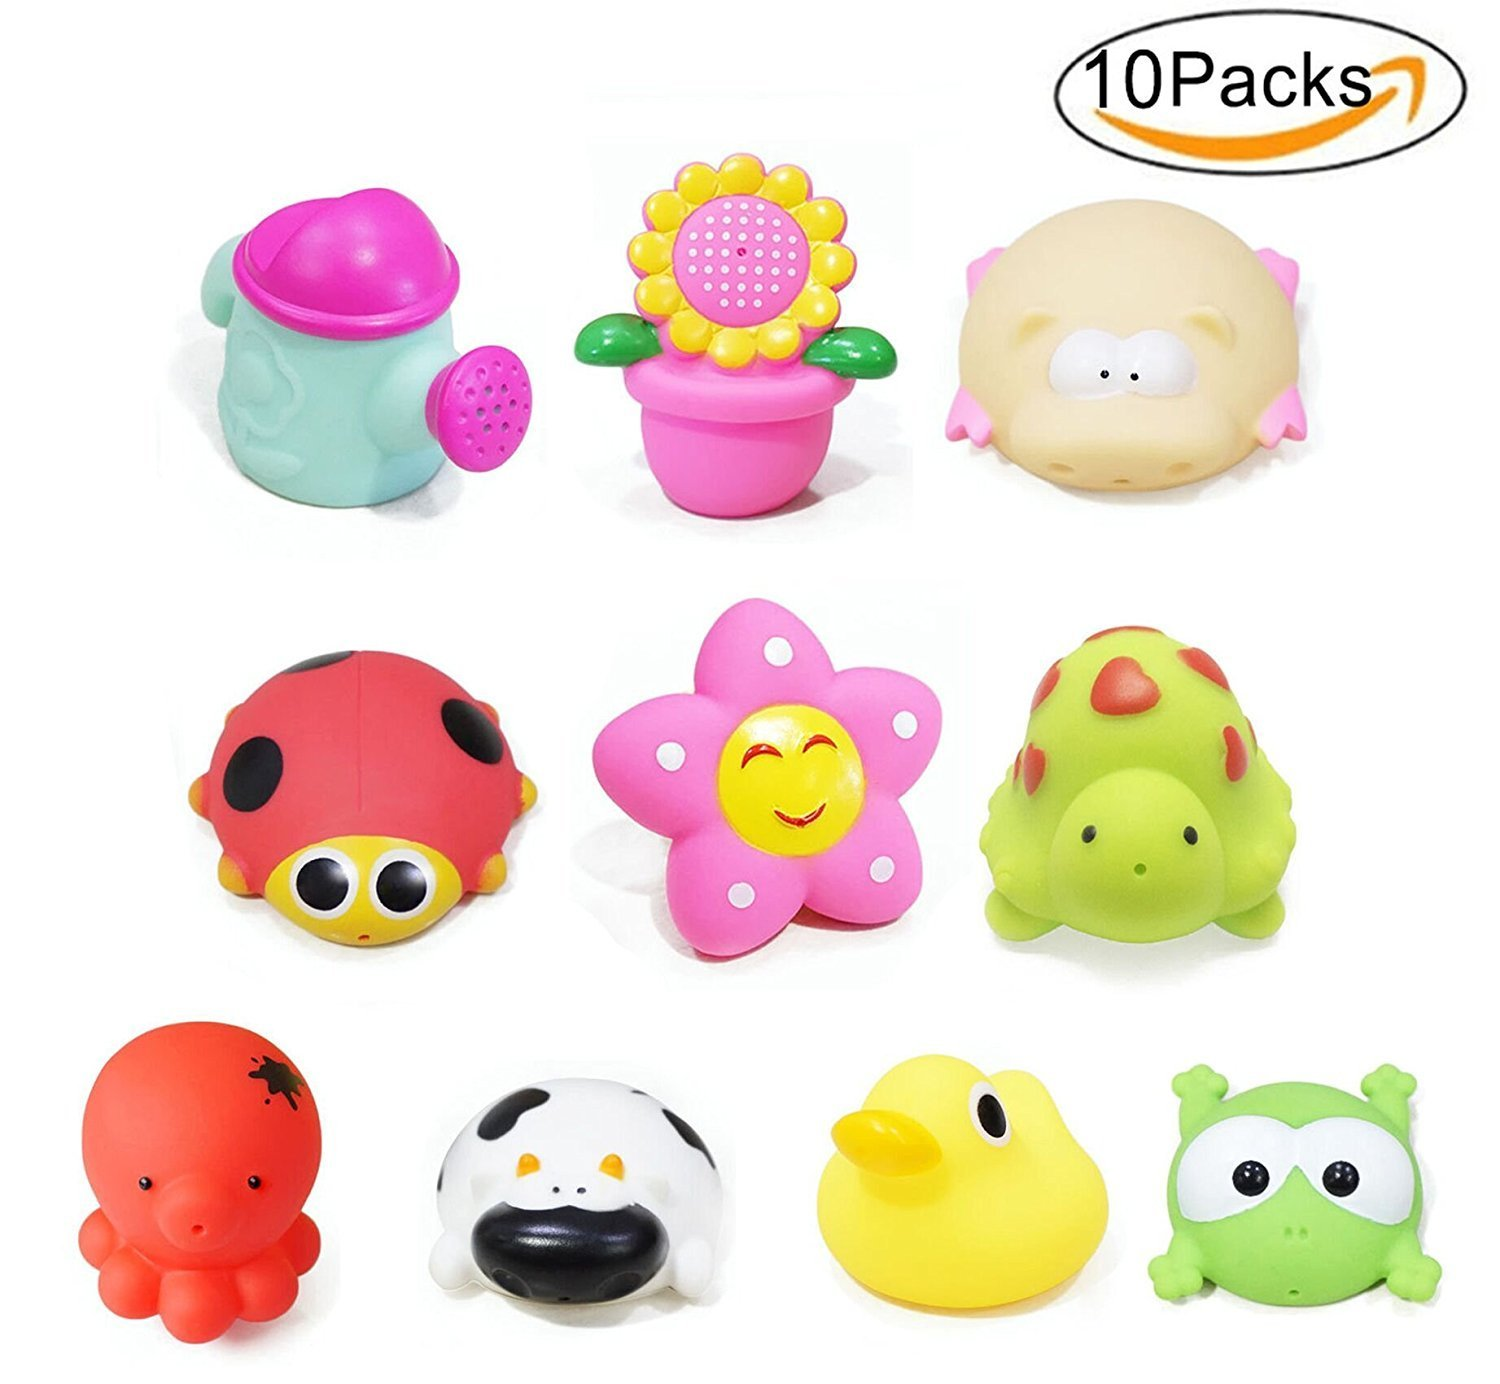 Baby Bath Toys 10 PCs Soft Rubber Animals Toys Kids Water Toys Squeeze Sound Spraying Beach Bathroom Toys